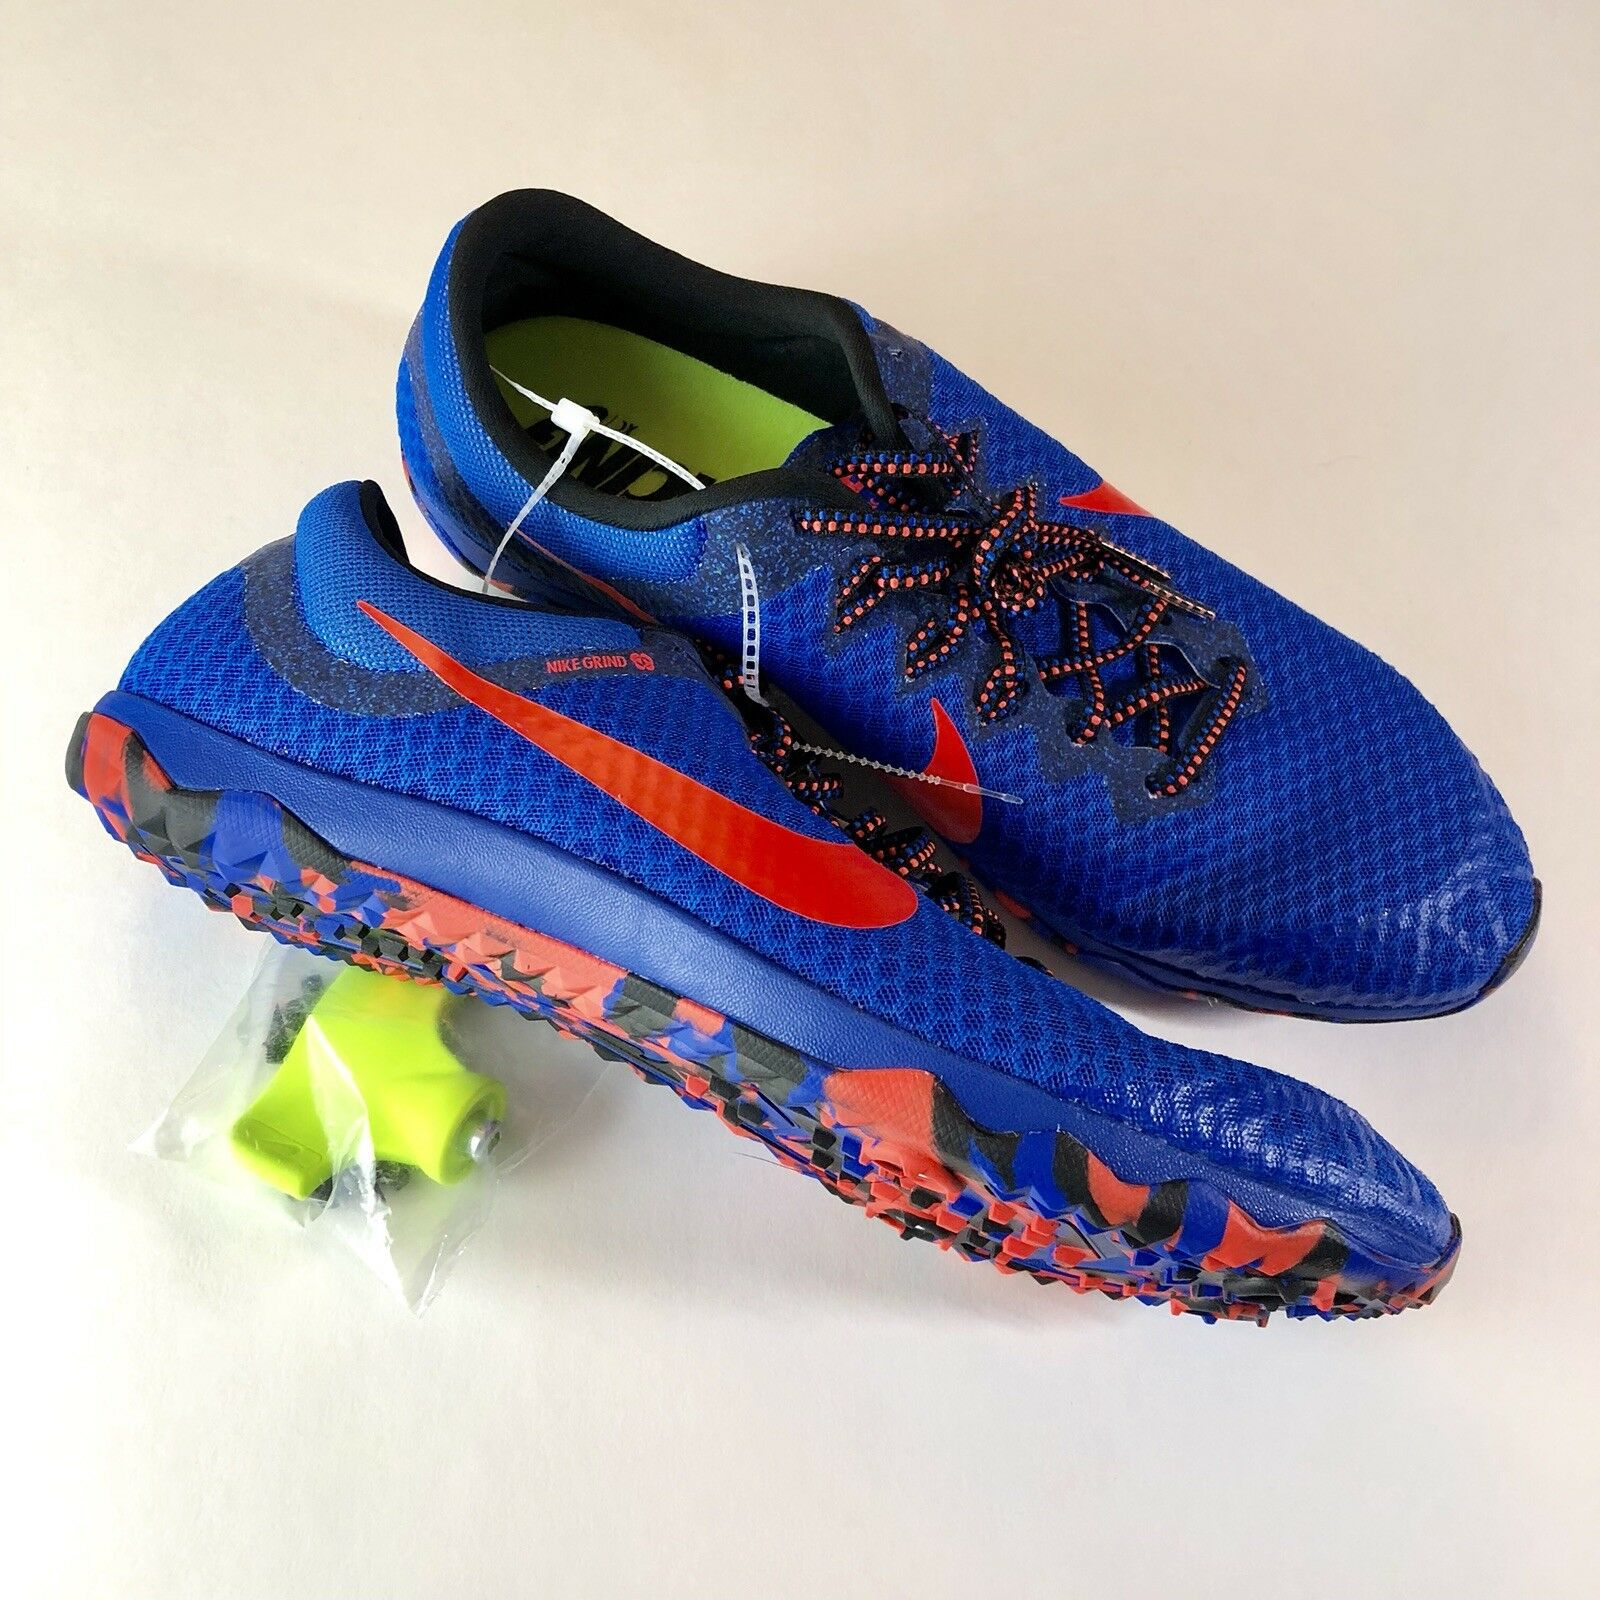 New Nike Zoom Rival XC Mens 12.5 Cross Country Running Shoes w/ Spikes Blue Red